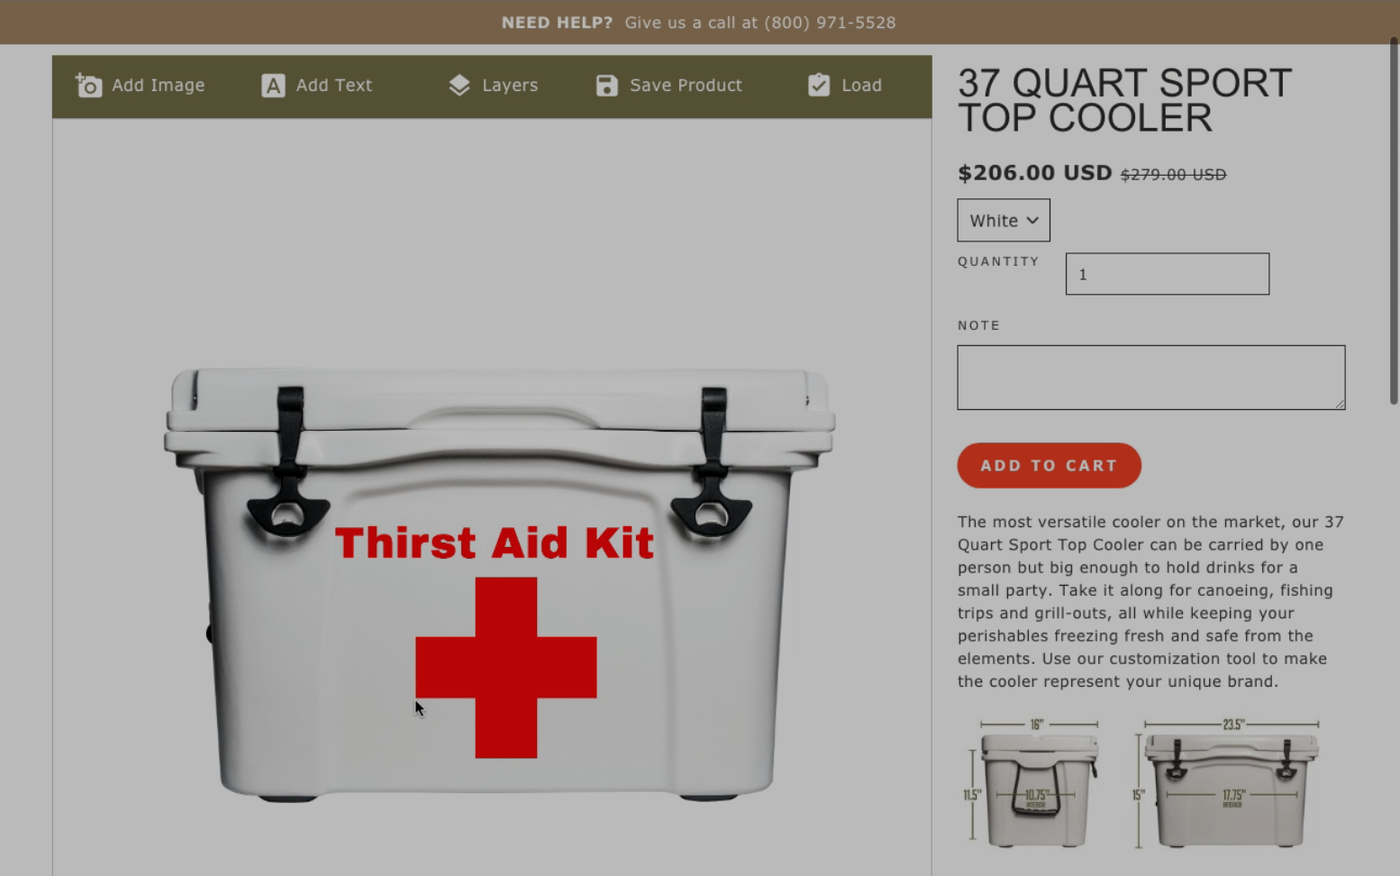 Thirst Aid Kit Cooler, Personalized Cooler